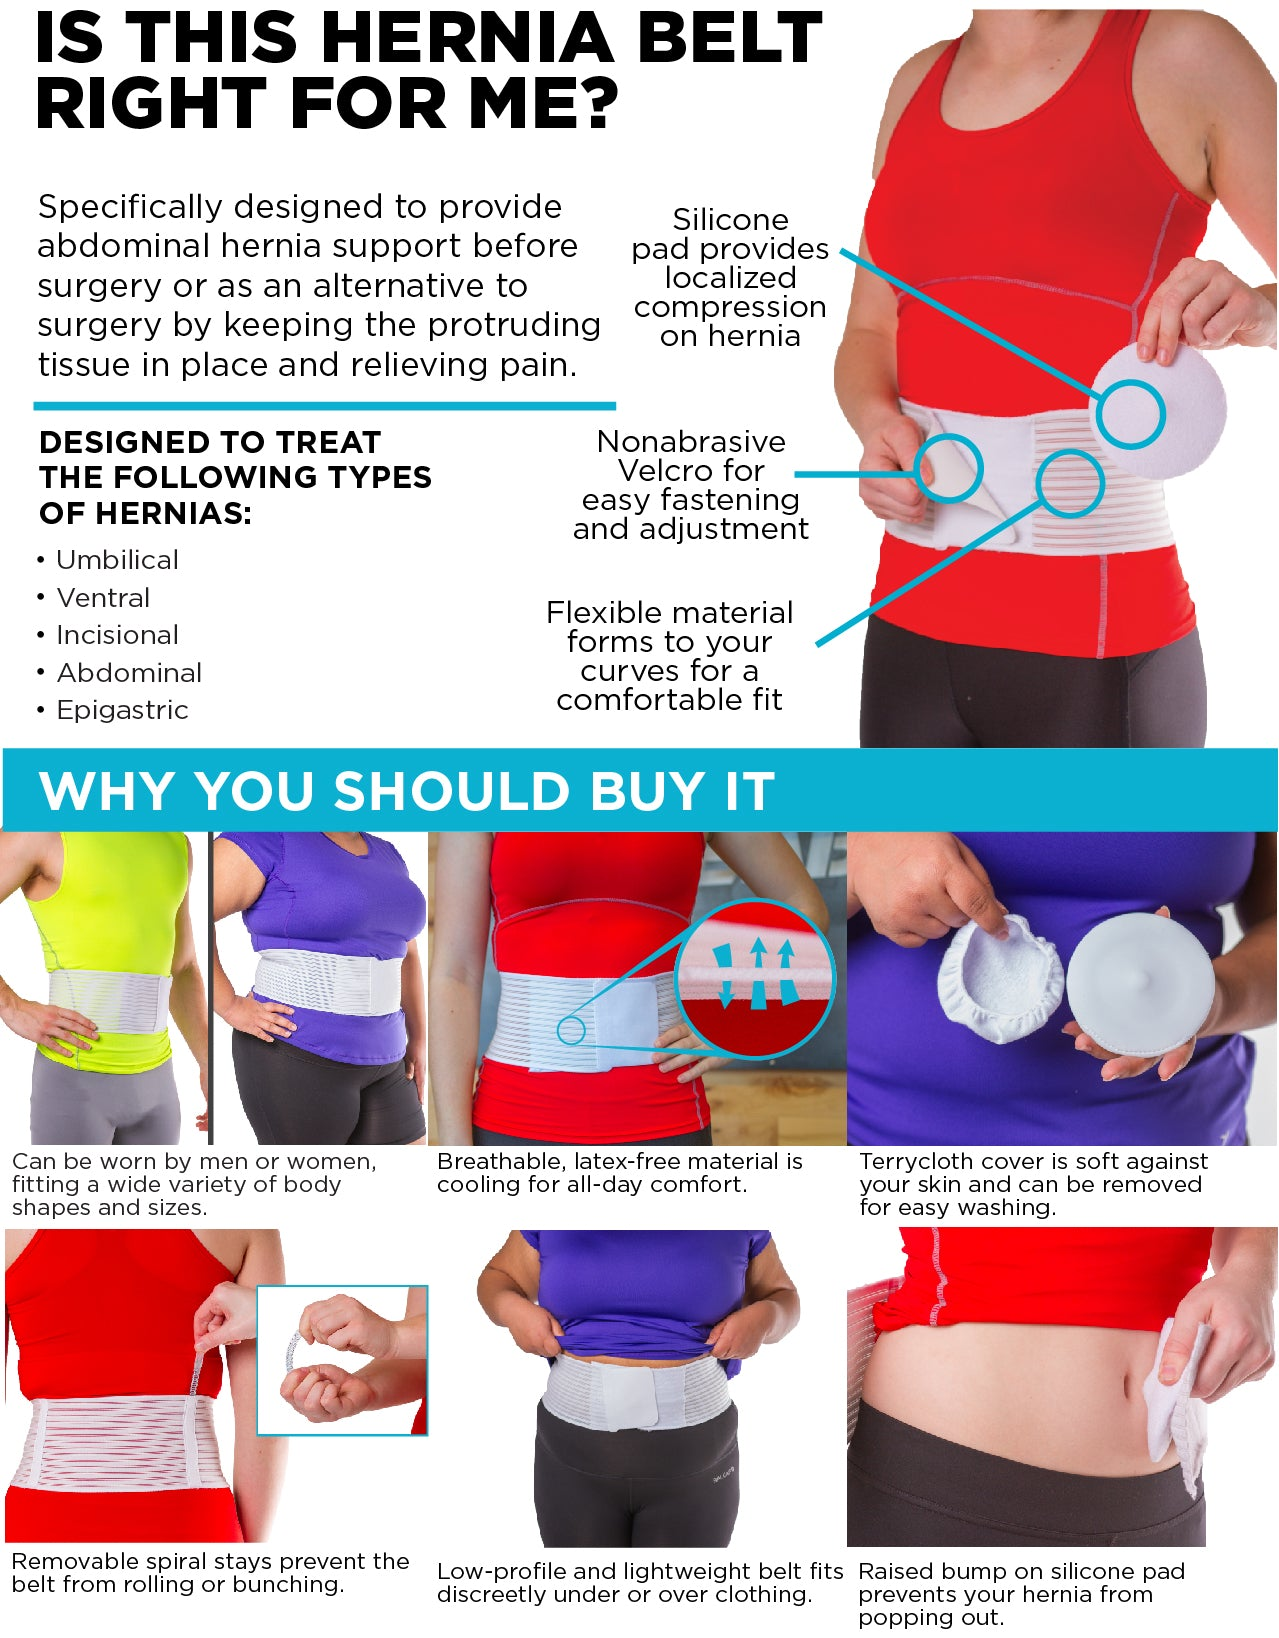 enhanced content explaining the abdominal hernia belt